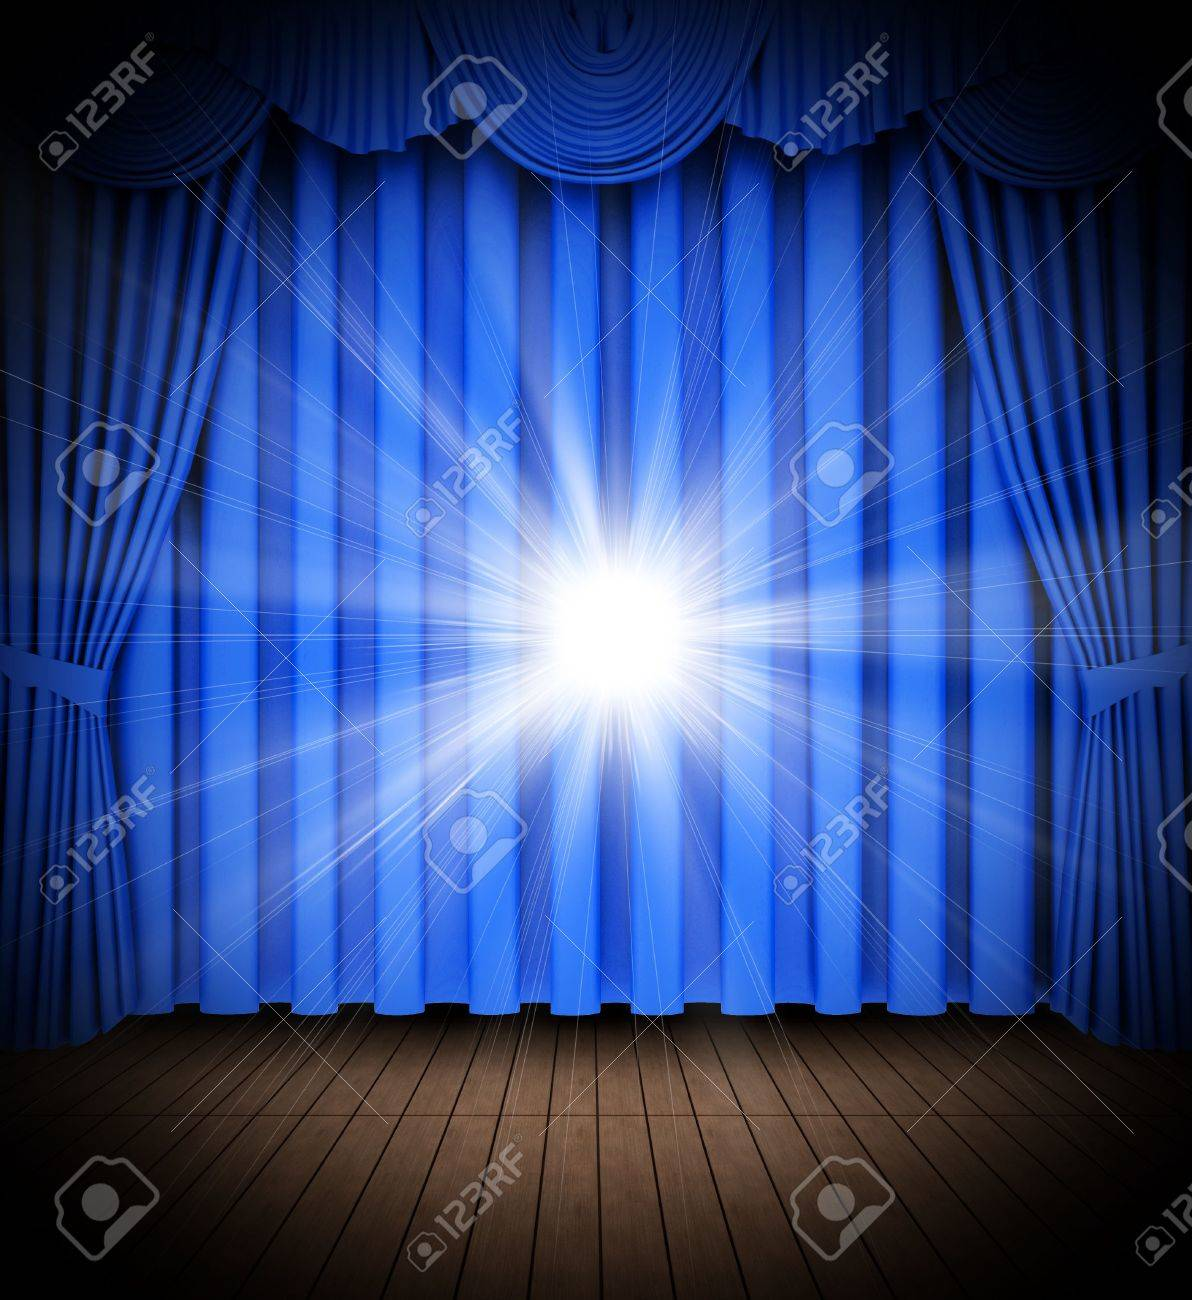 Blue stage curtains blue stage curtain vector free vector in - Light Blue Stage Curtain Blue Theater Curtain Opening Scene With Spot Lights Stock Photo 6491012